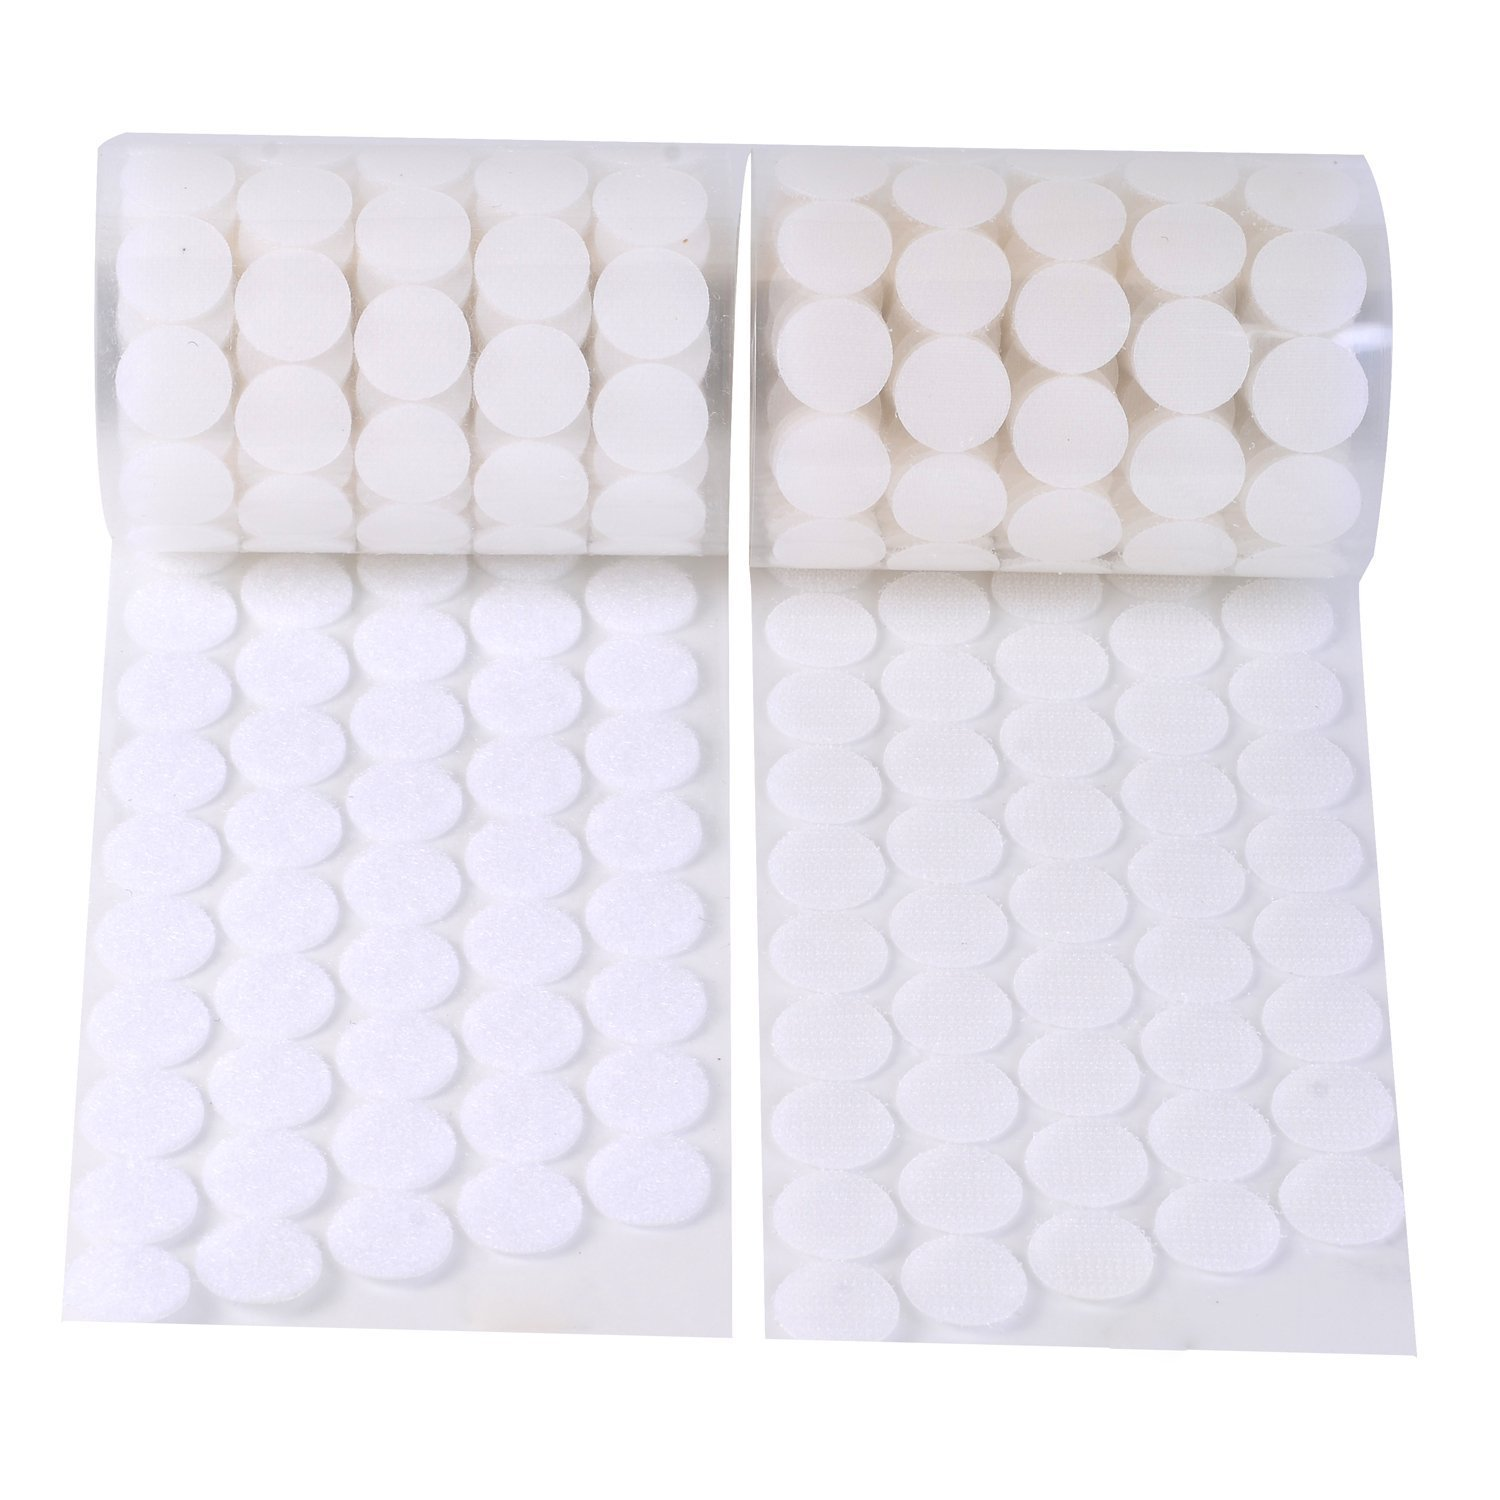 Vkey 1000pcs 500 Pairs 2cm Diameter Adhesive Sticky Back Coins Hook Loop Self Adhesive Dots Tapes Magic Sticky White by Vkey